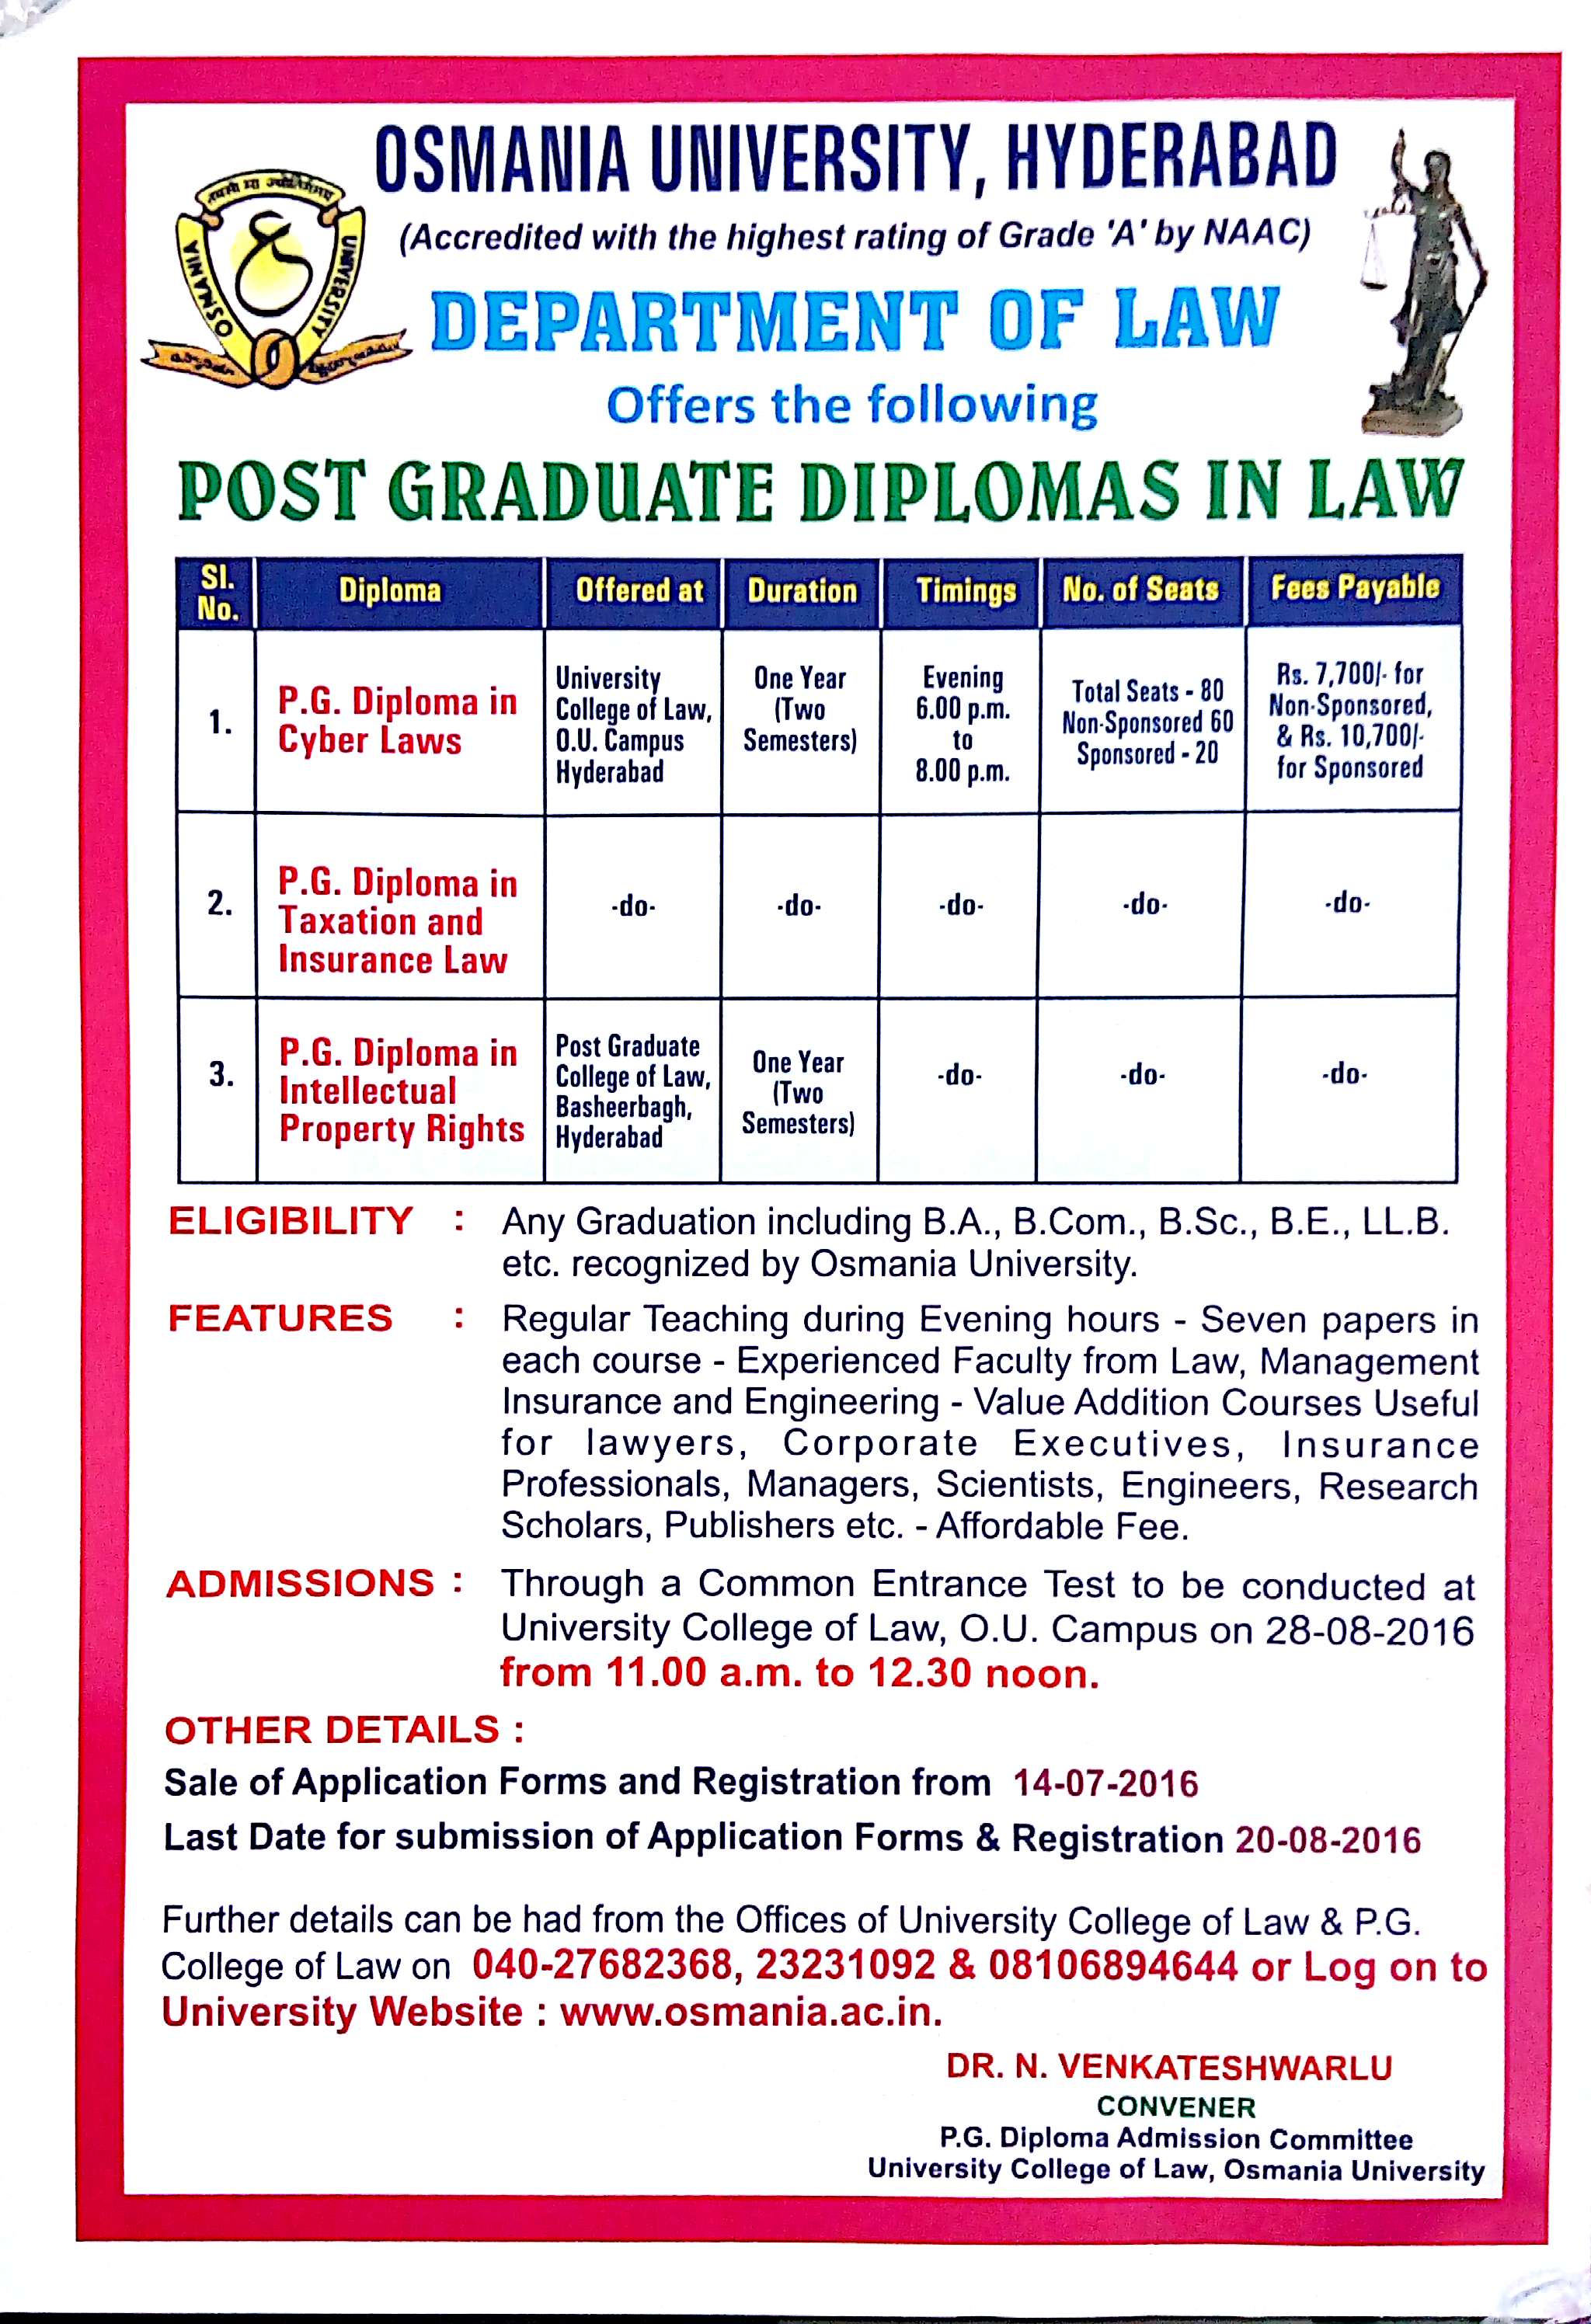 university pg diplomas in cyber taxation insurance laws and  osmania university pg diplomas in cyber taxation insurance laws and intellectual property rights